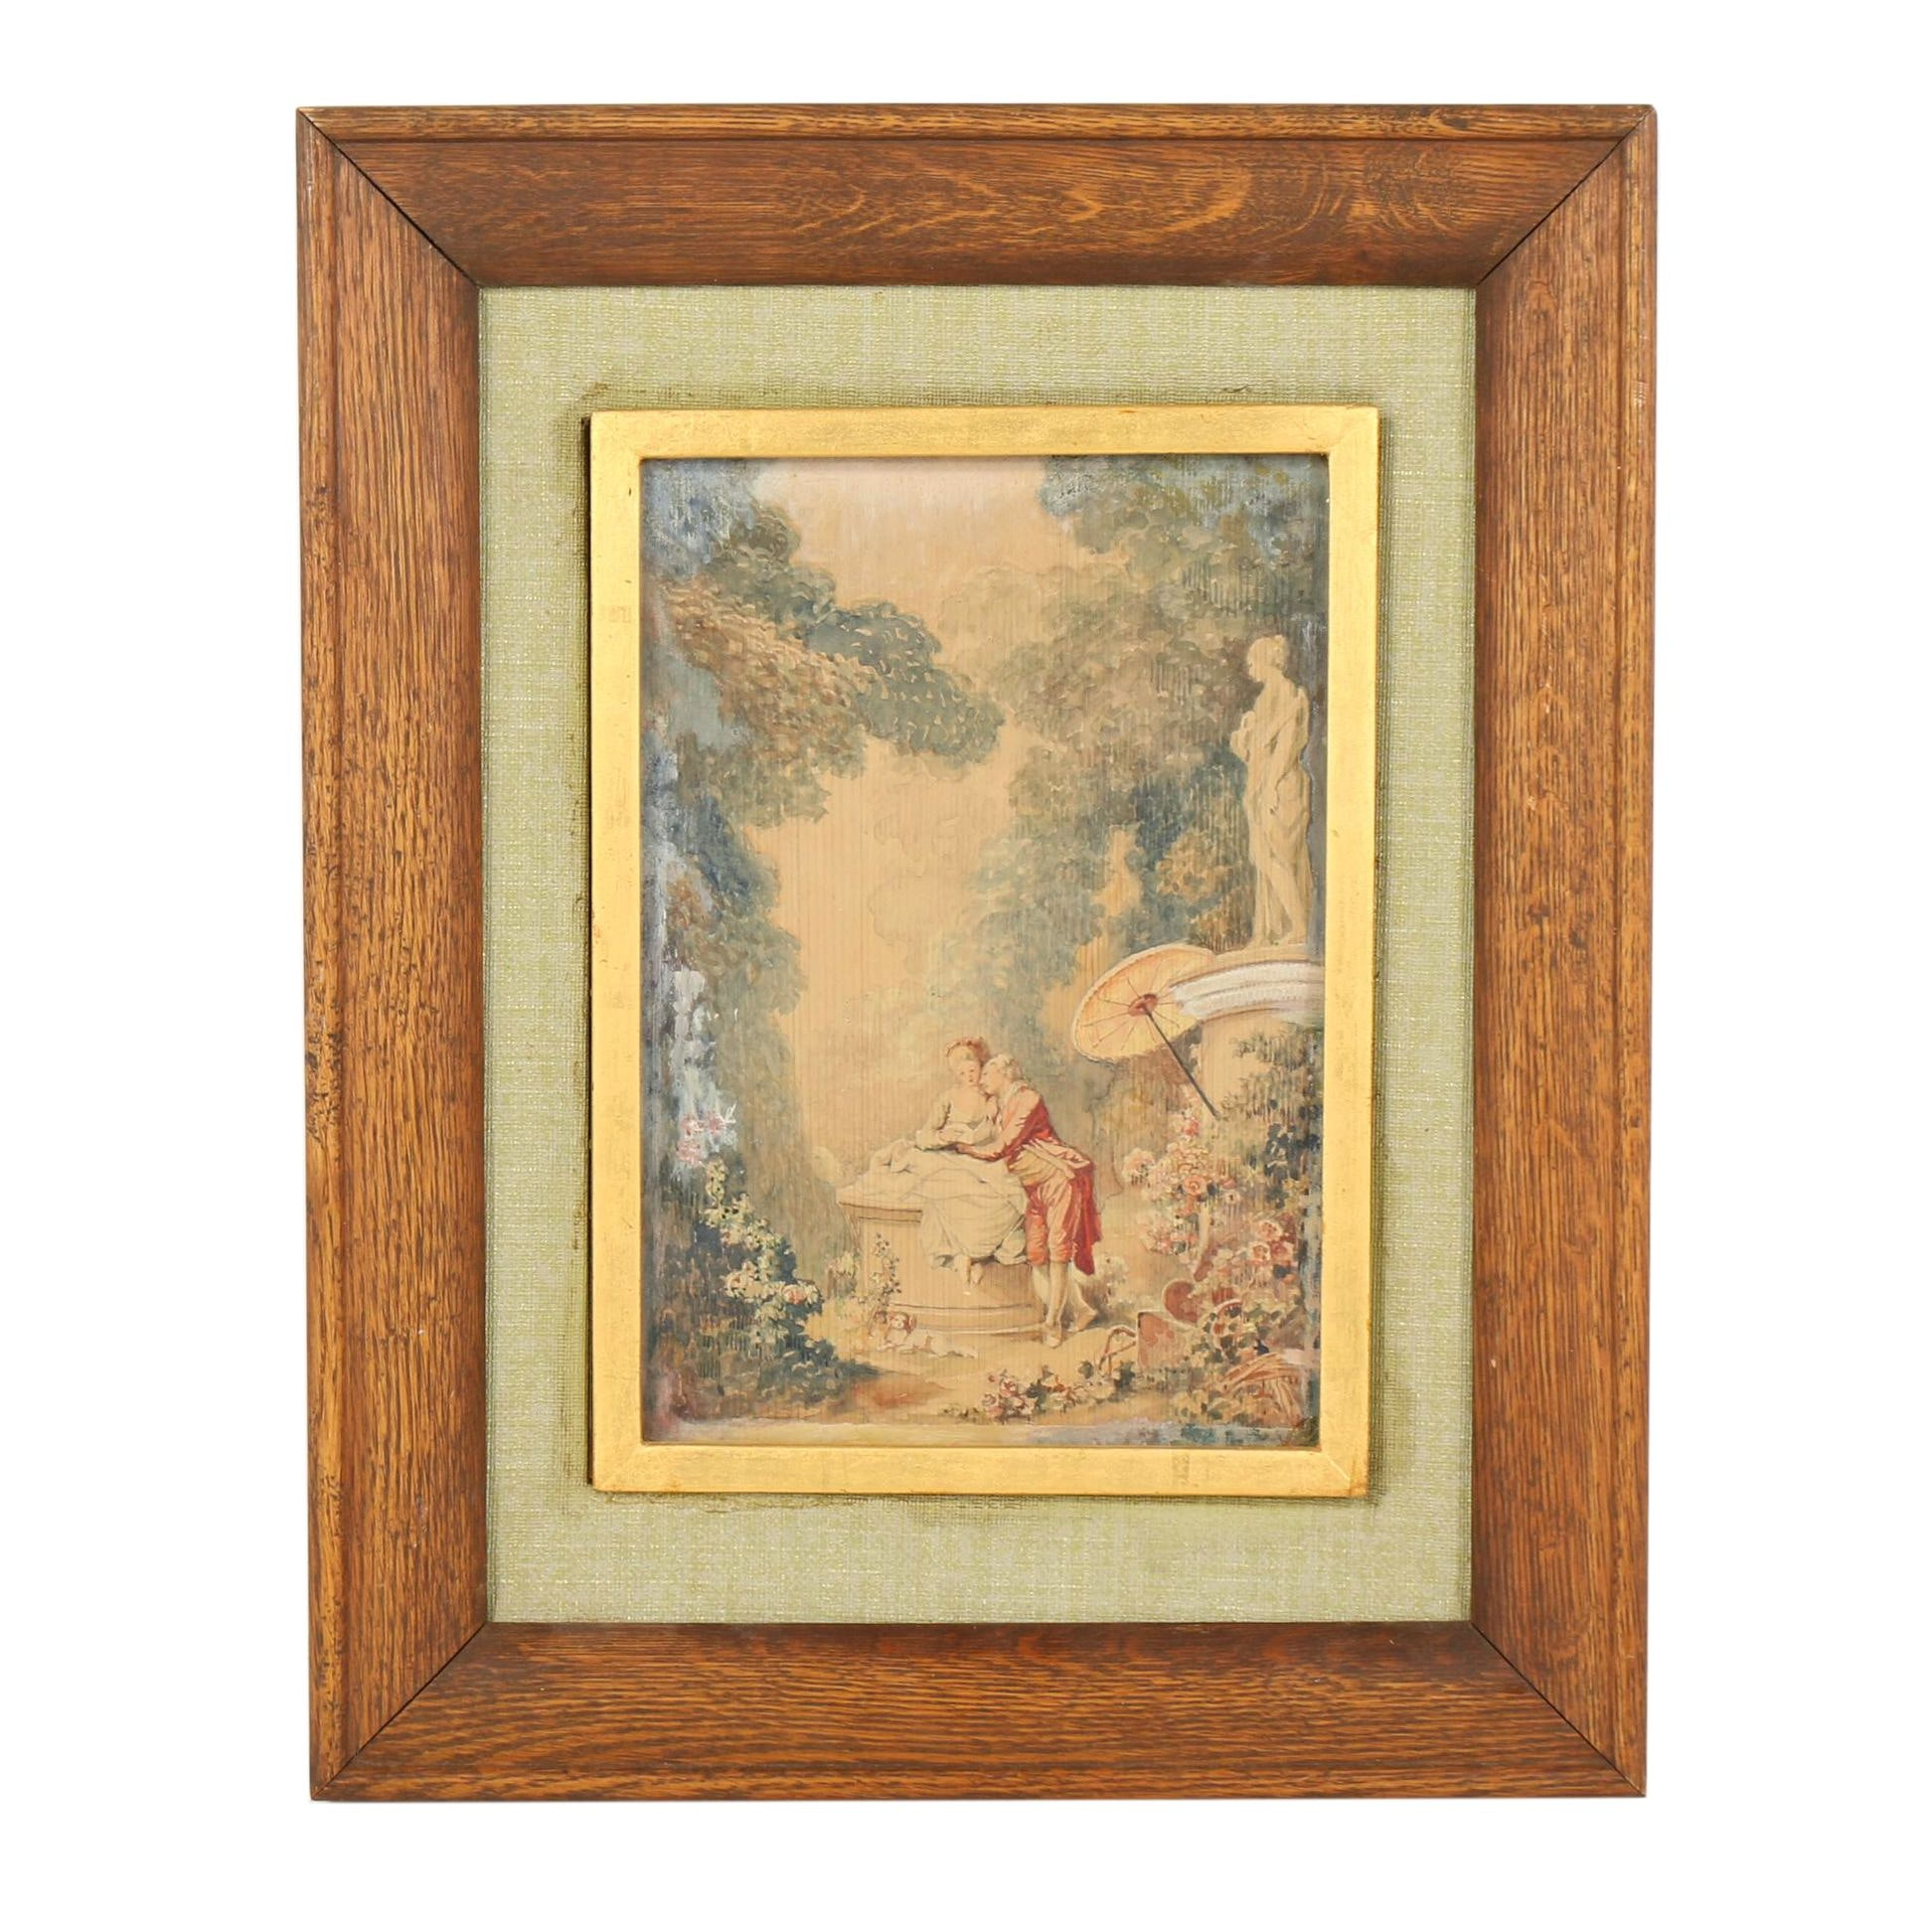 Color Lithograph after Jean-Honore Fragonard